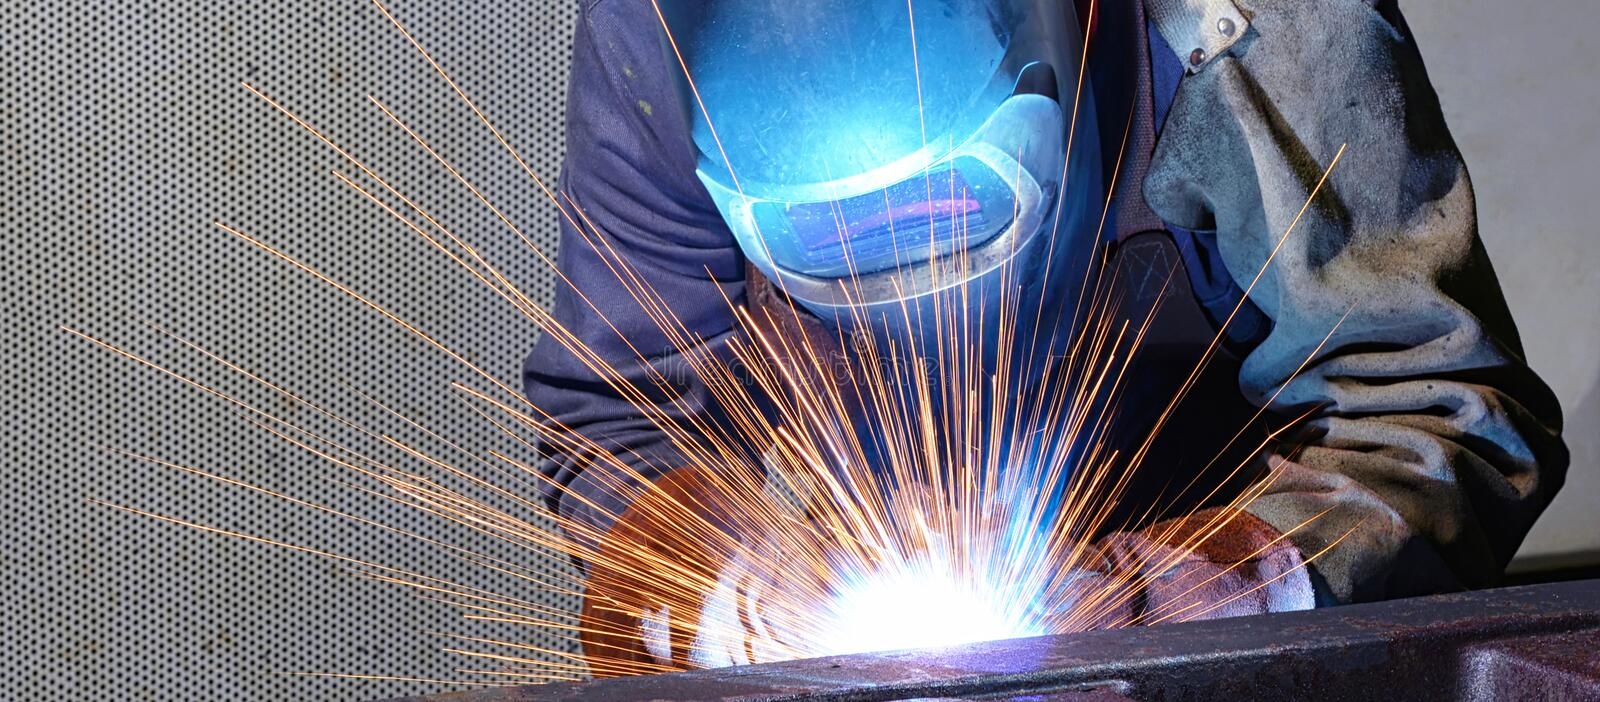 Welder works in an industrial company - production of steel comp stock photos